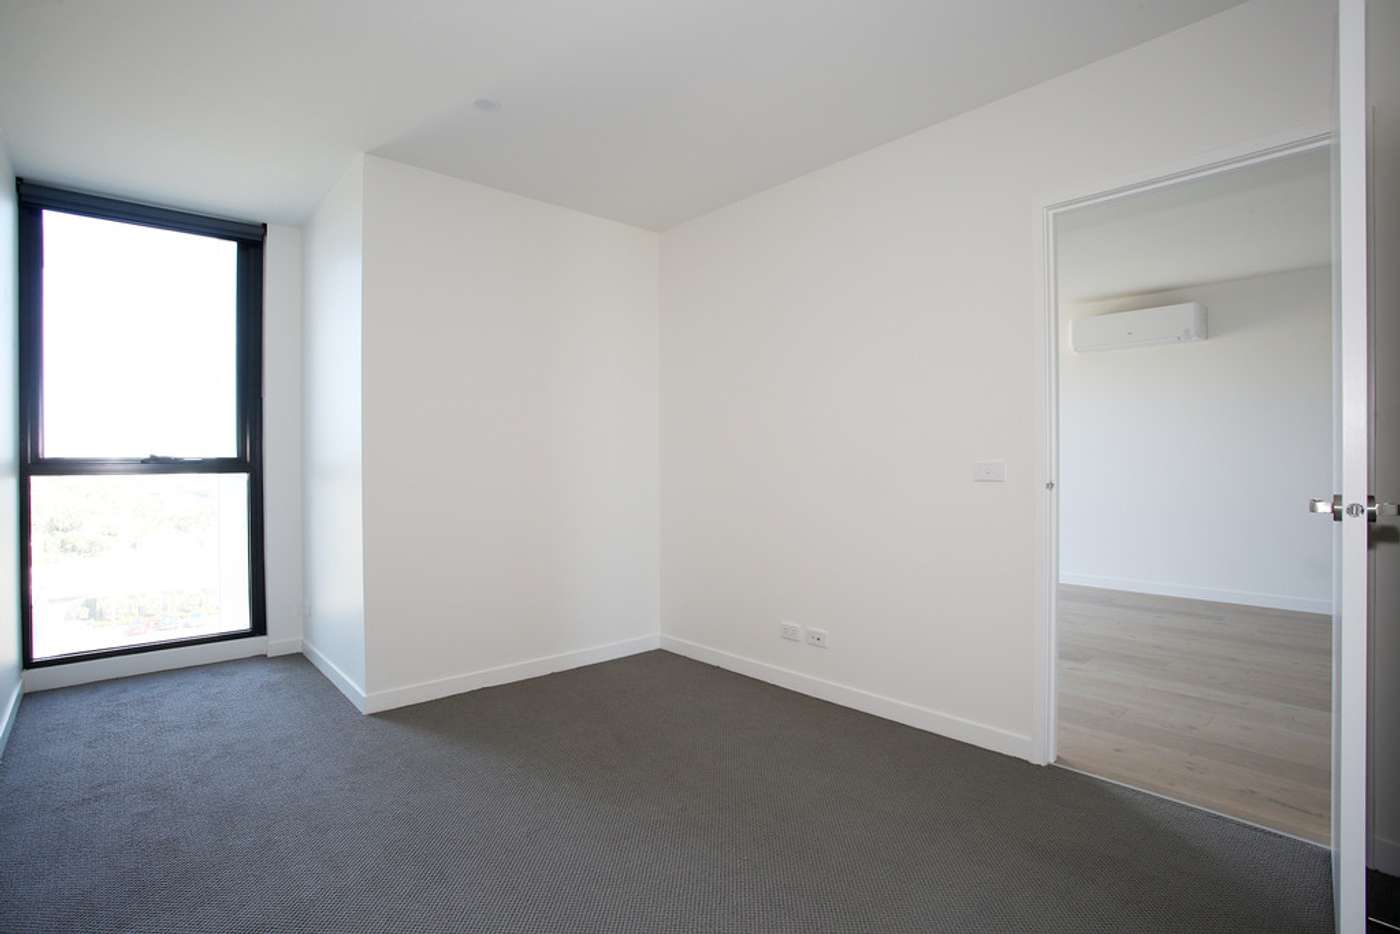 Seventh view of Homely apartment listing, 507/5 Olive York Way, Brunswick West VIC 3055